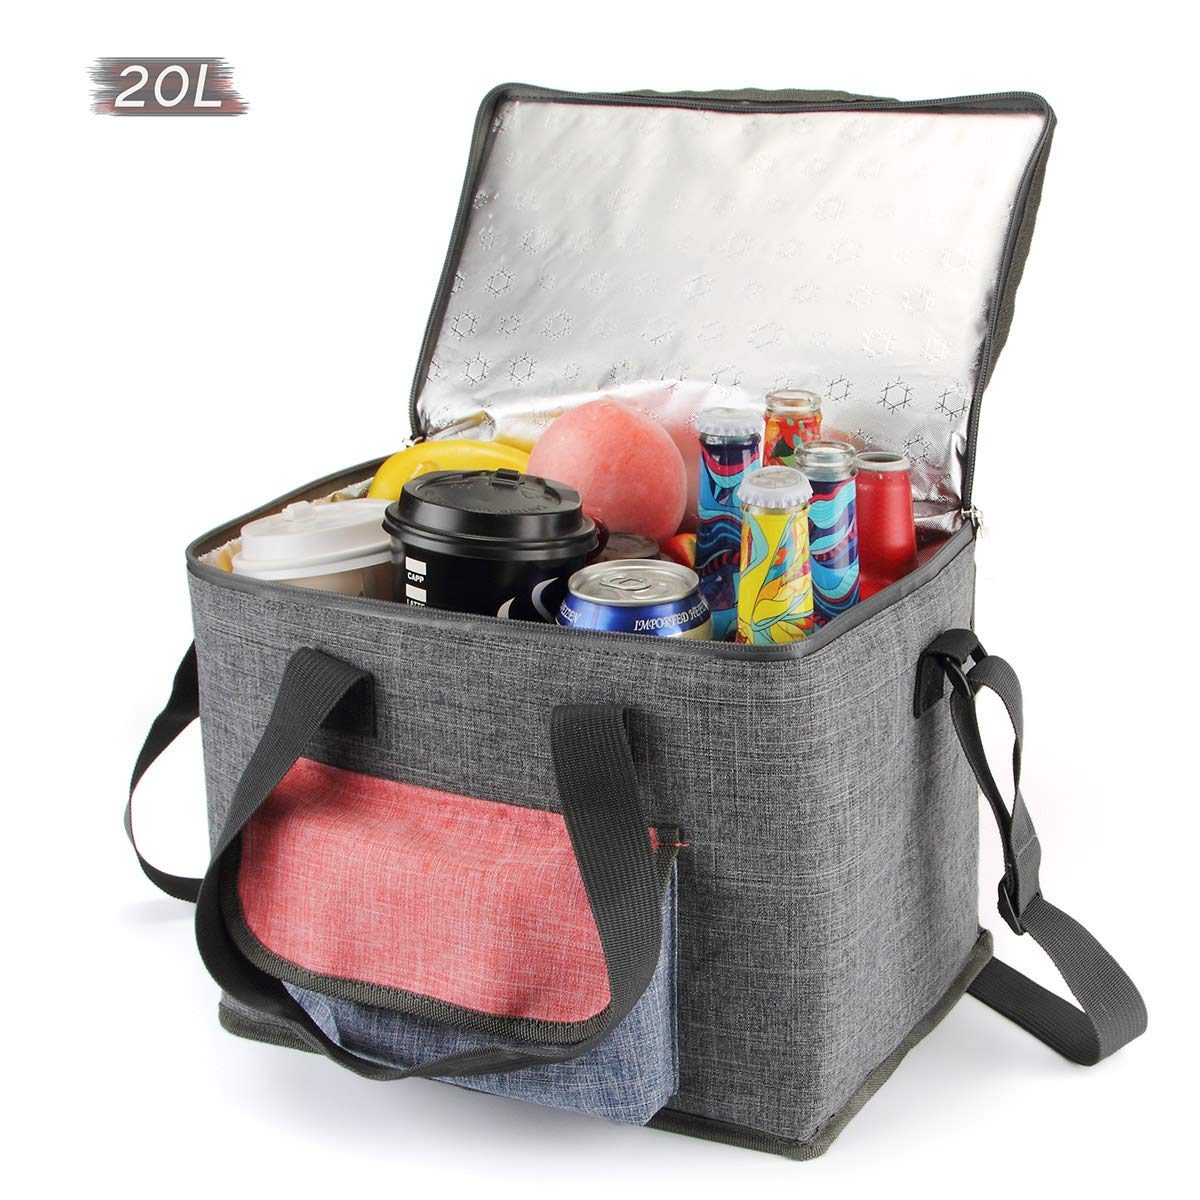 AnSun Large Insulated Cooler Bags, Soft Foldable Coolers for Picnic Camping Beach BBQ Food Shopping Travel, 20L Grey